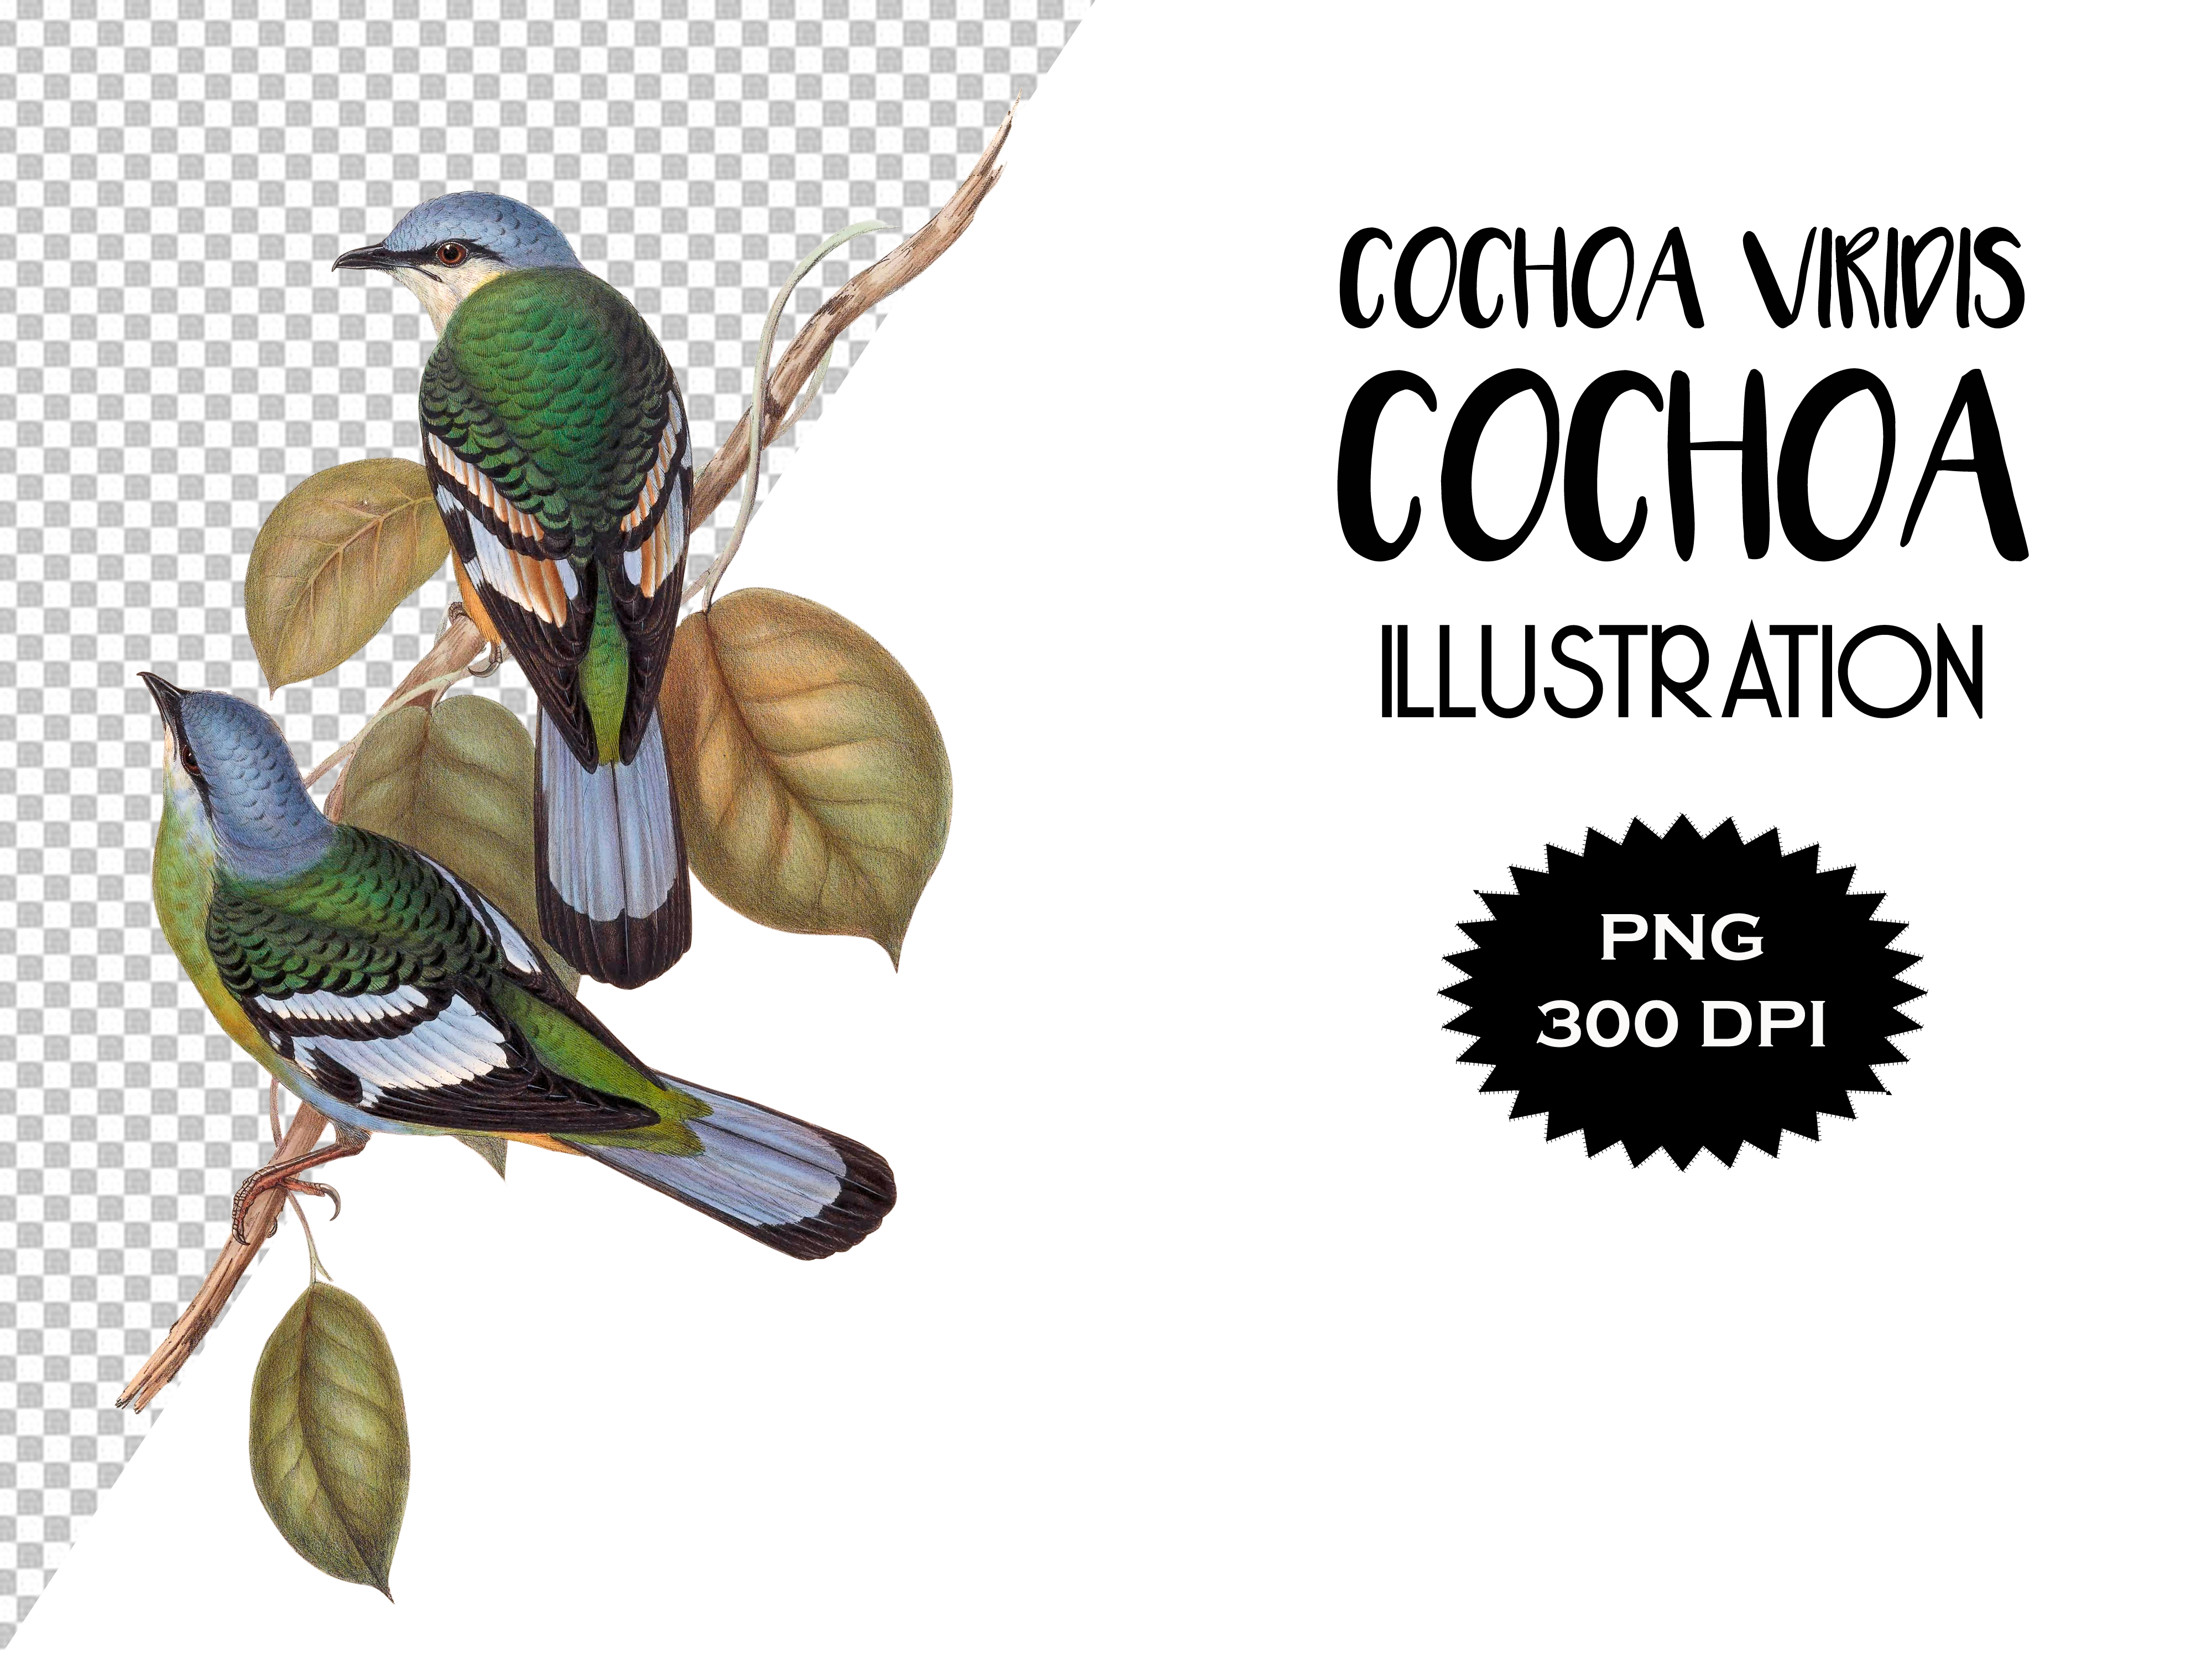 Download Free Green Cochoa Bird Illustration Graphic By Antique Pixls for Cricut Explore, Silhouette and other cutting machines.